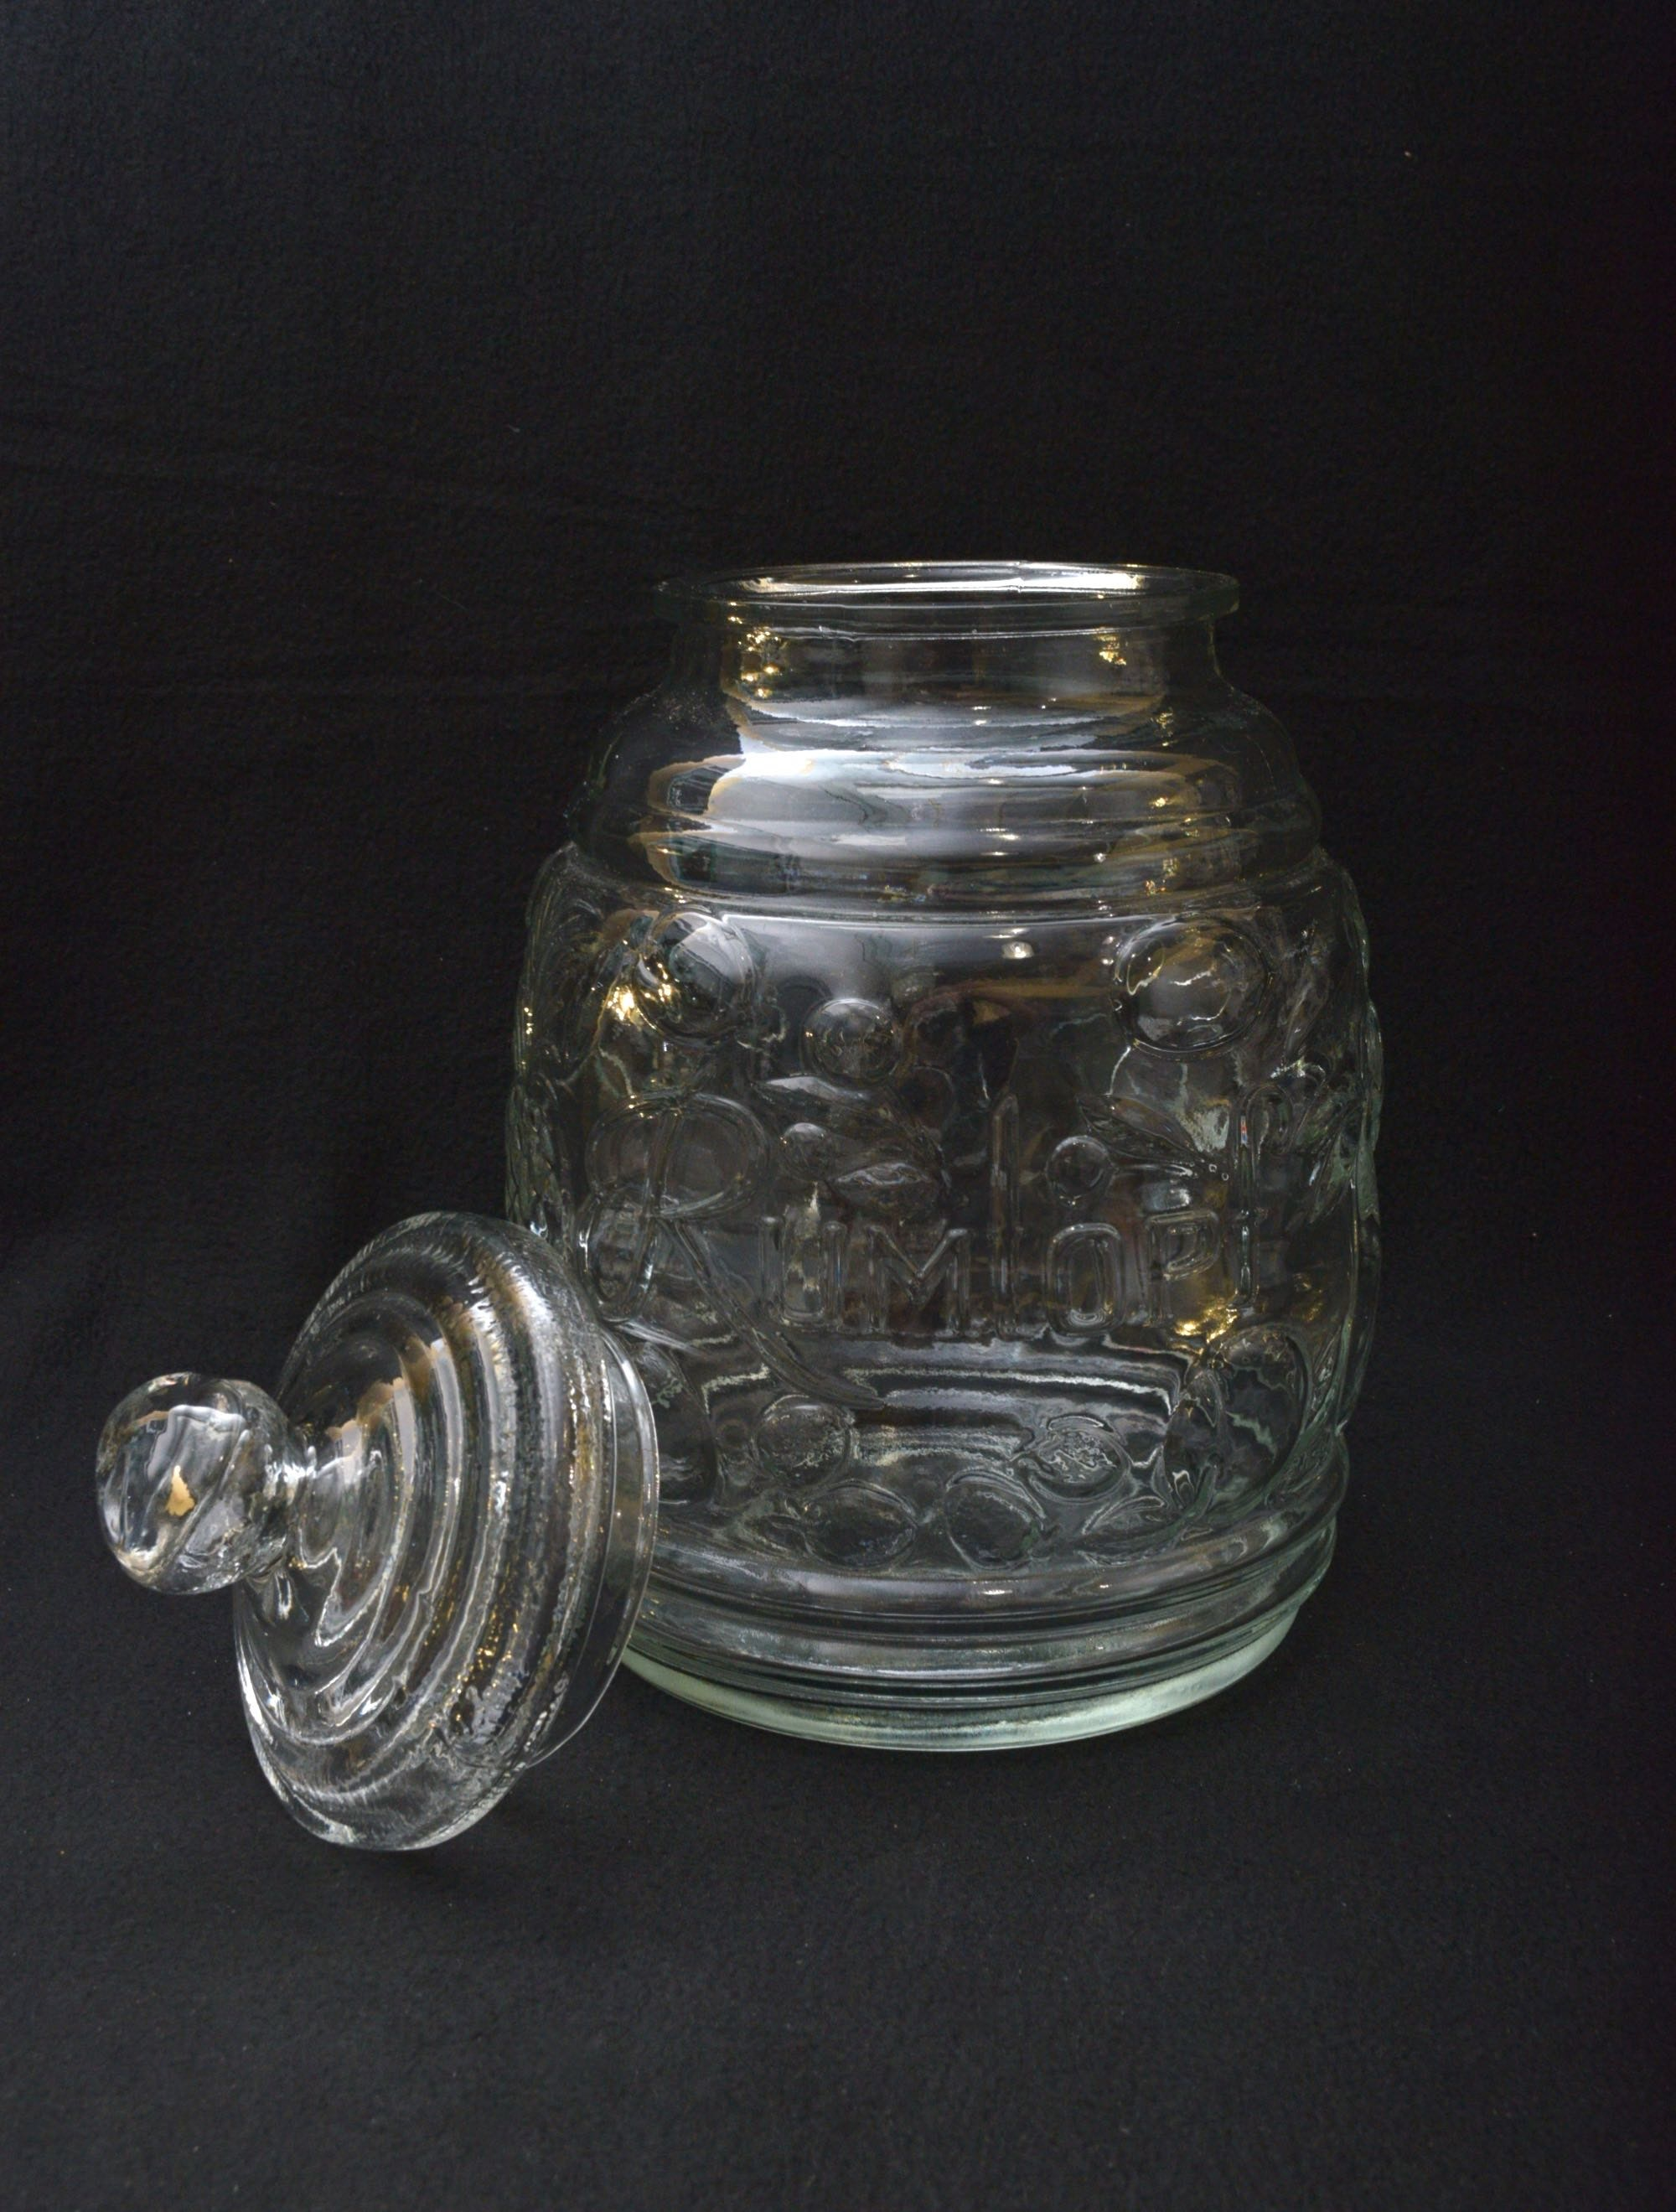 Clear Glass Quot Rumtopf Quot Lidded Jar With Assortment Of